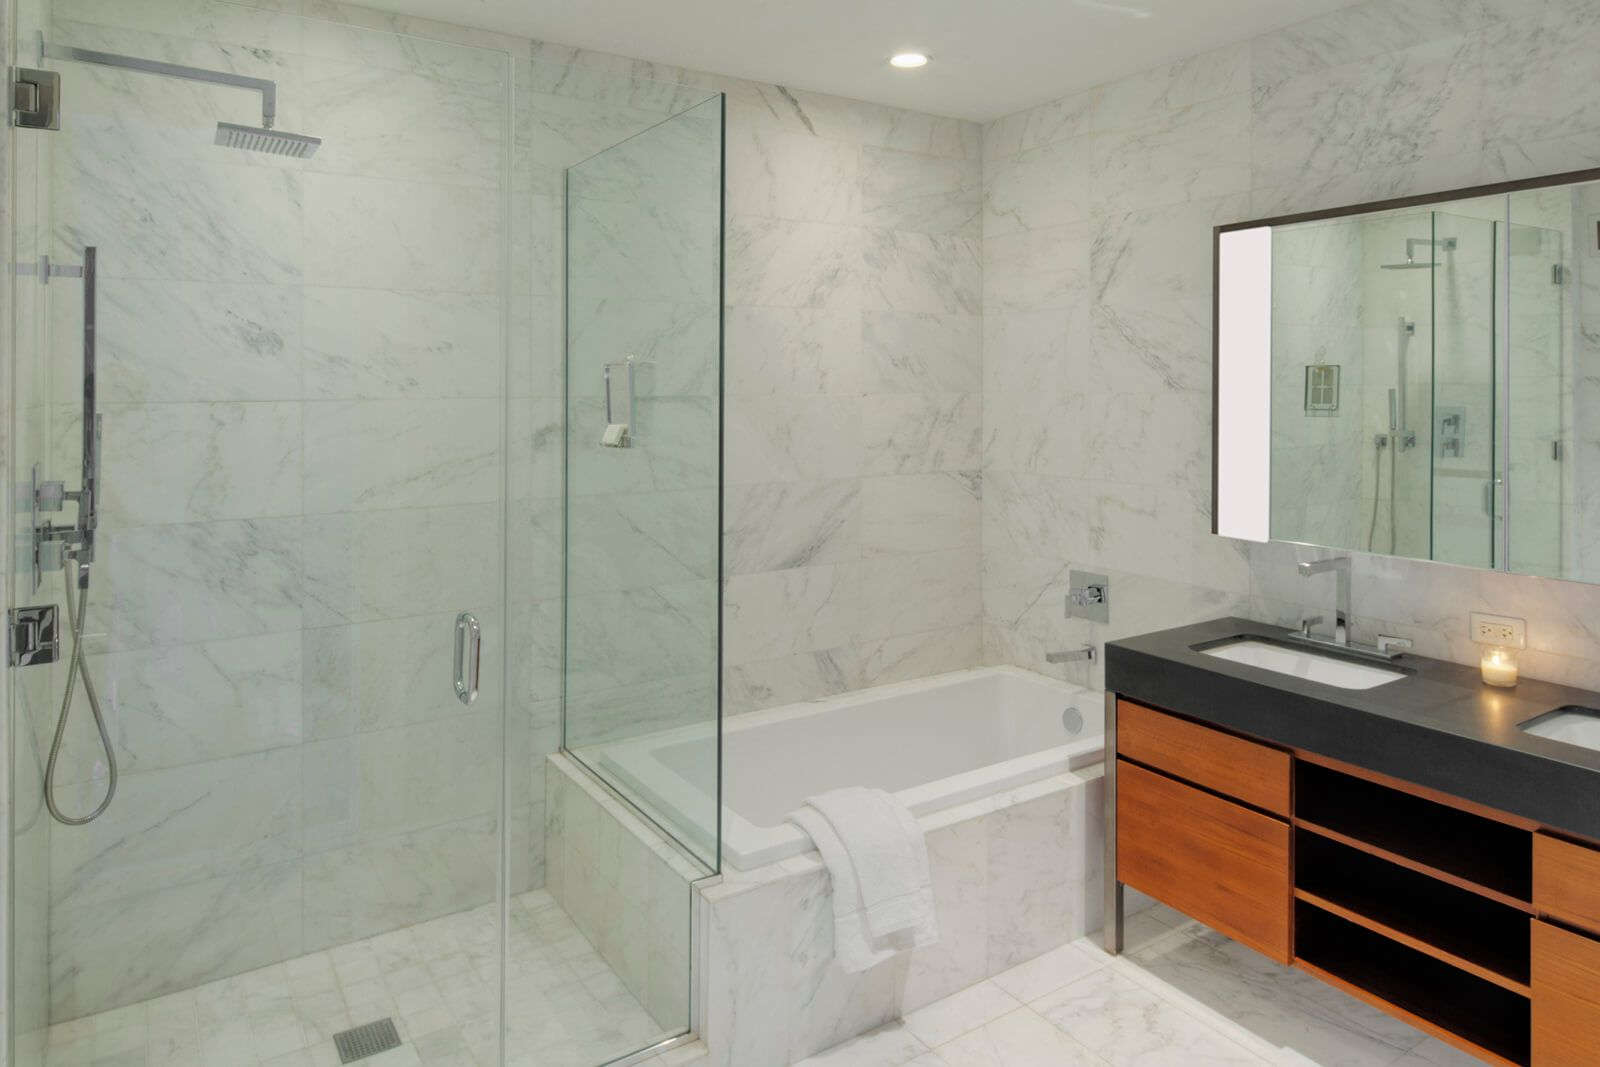 Best Cleaner for Marble Shower Mold LoveToKnow in 2020